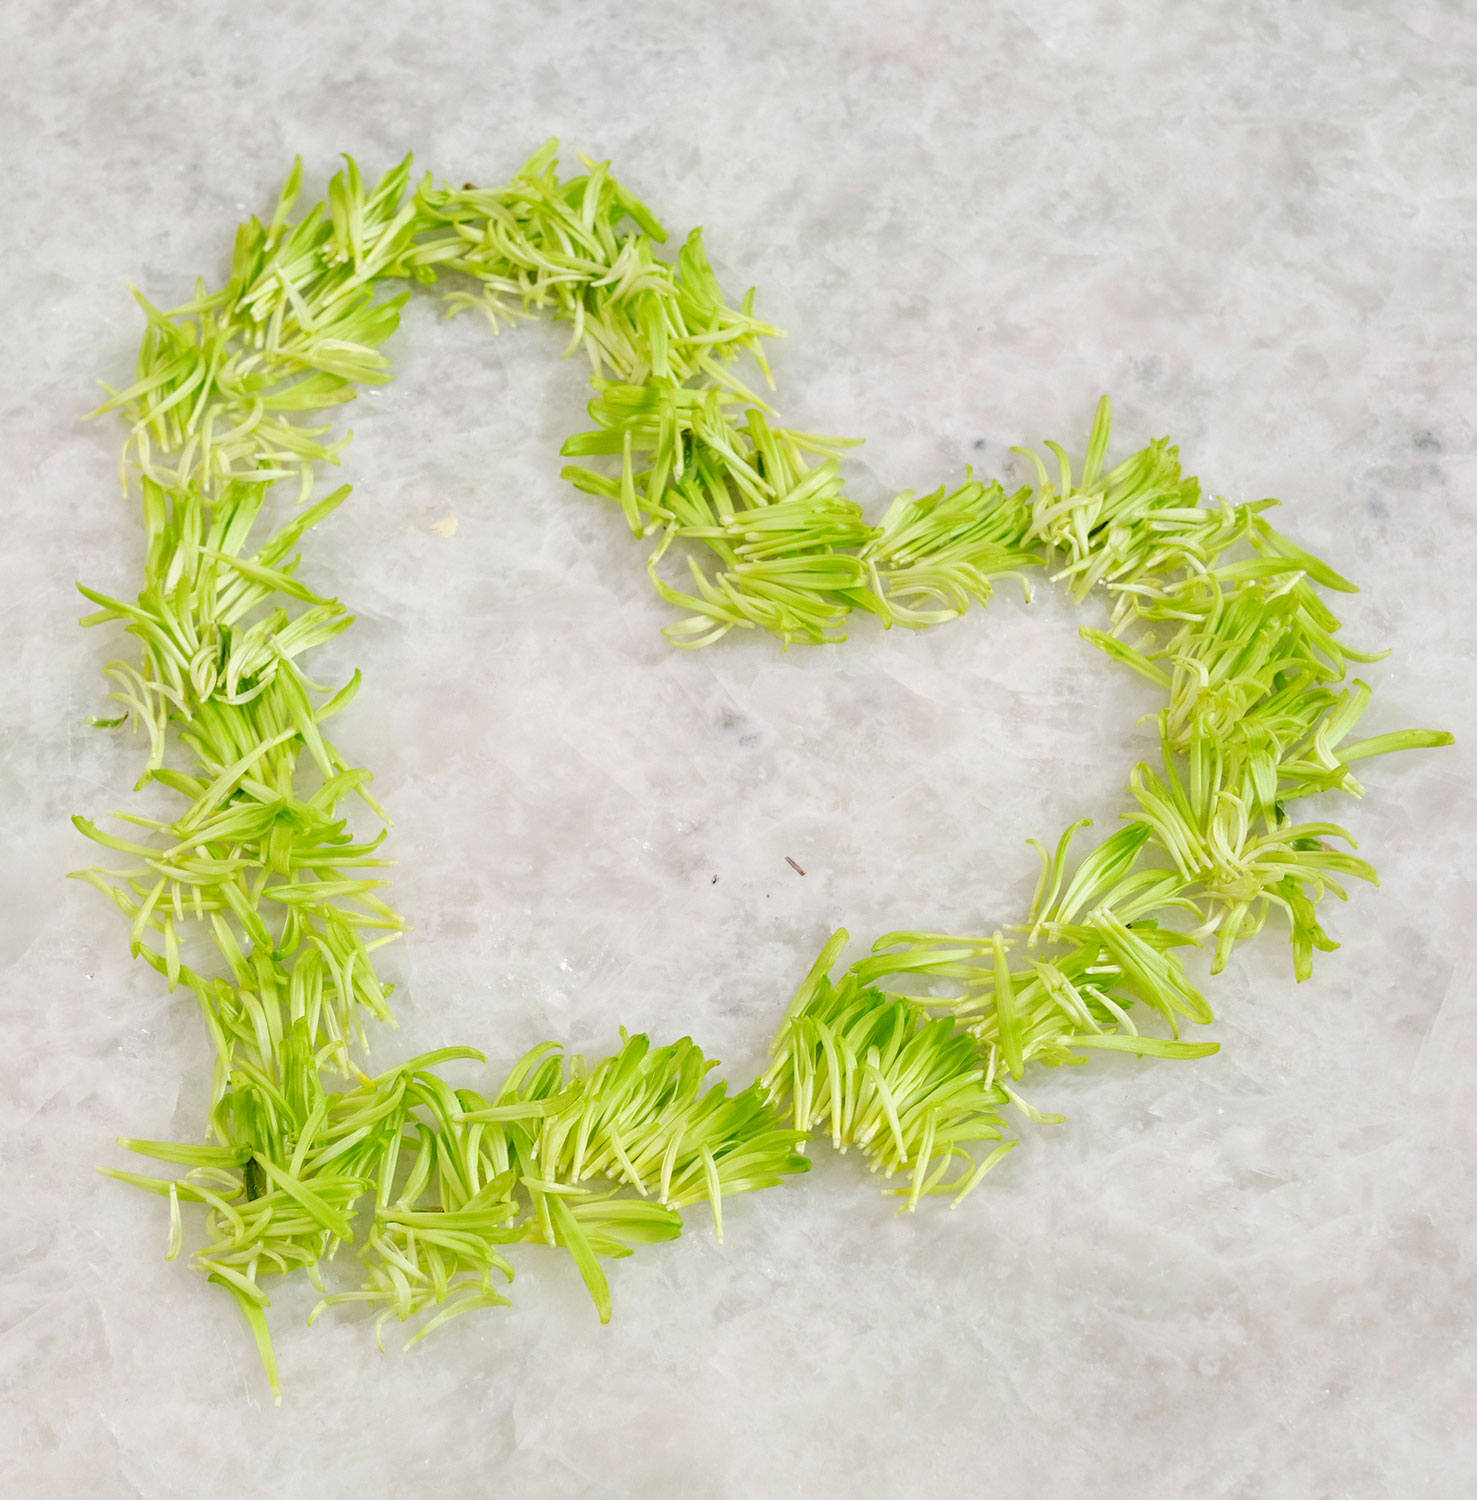 It's easy to create a heart shape with flower petals- here I used Green Fugi Spray Chrysanthemum petals...